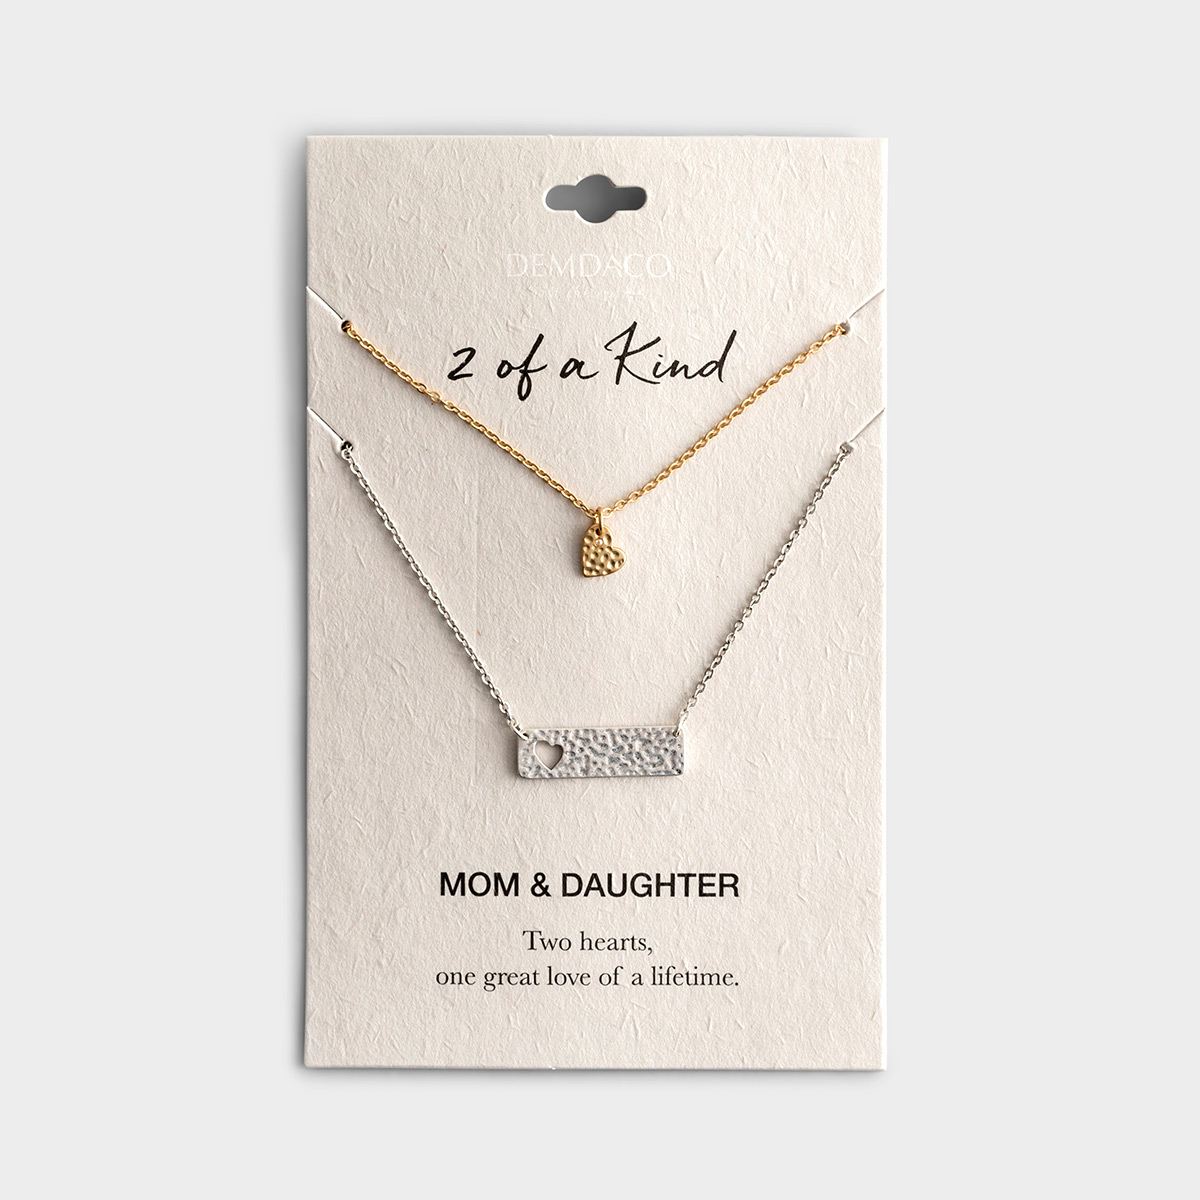 2 of a Kind - Mom & Daughter - Necklace